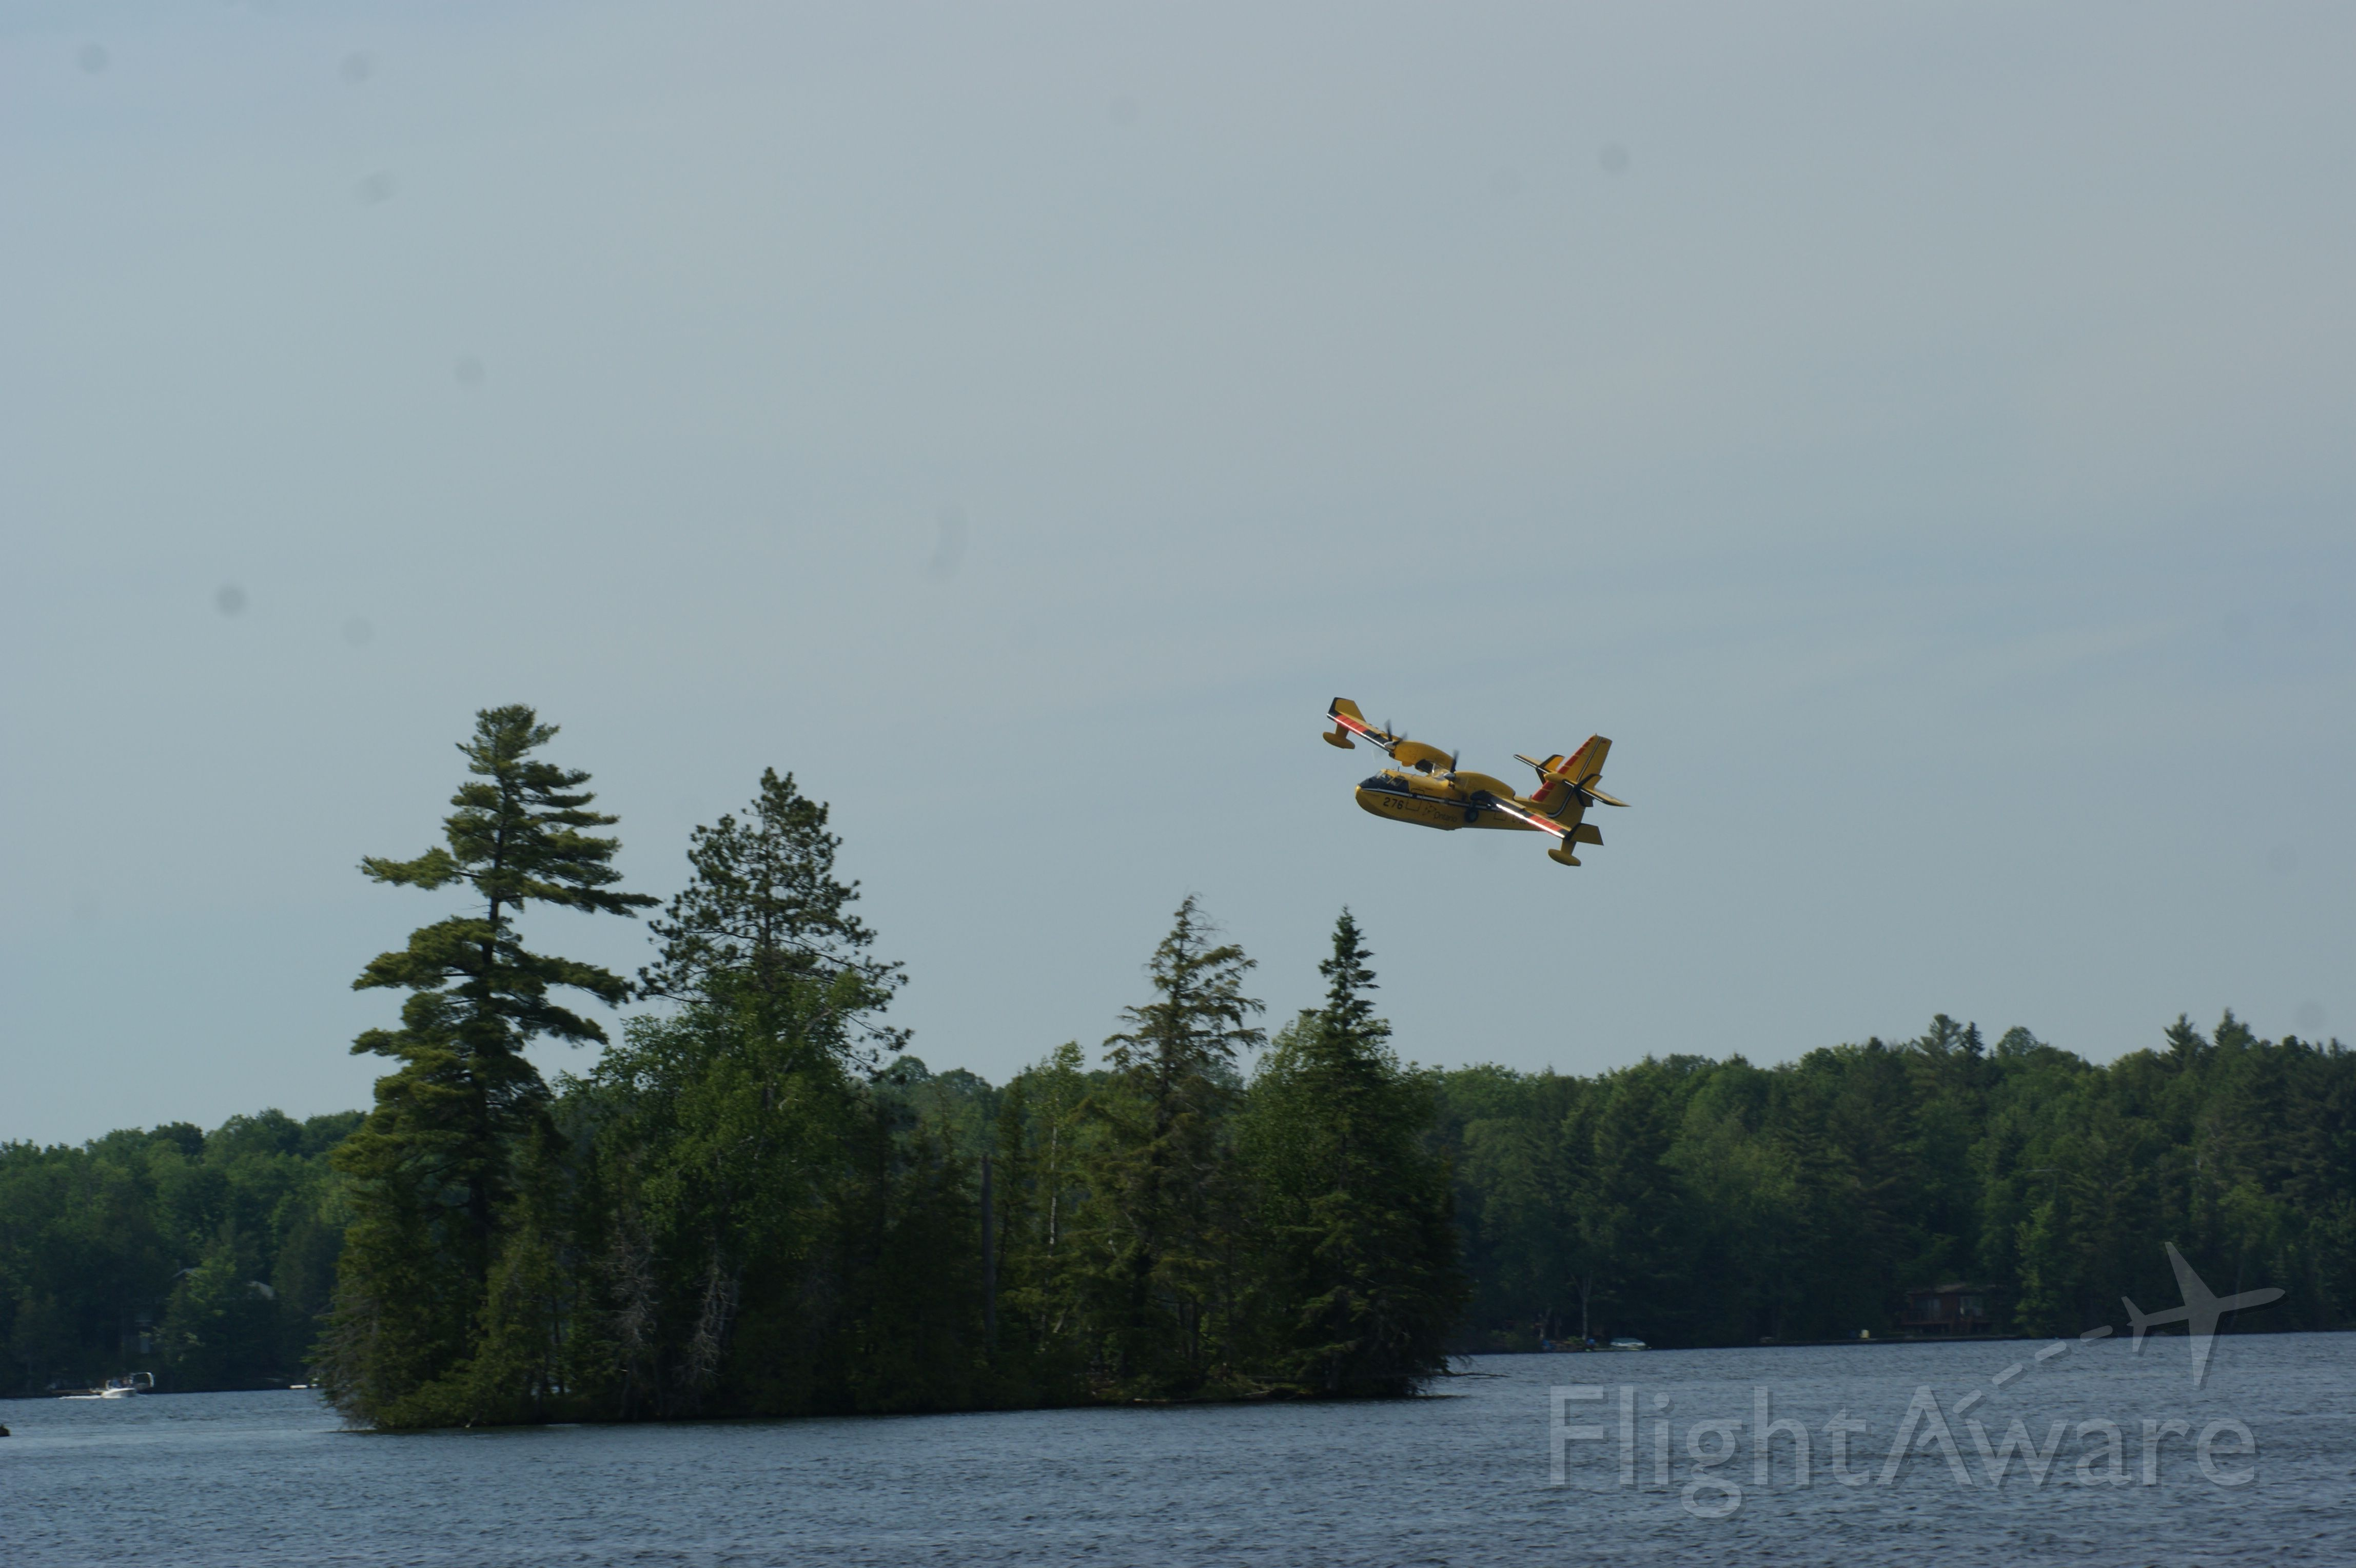 Canadair CL-41 Tutor (C-GOGX) - Crystal Lake, Ontario taken from our dock we had an awesome view as two SuperScoopers fought a nearby forest fire we could not see.